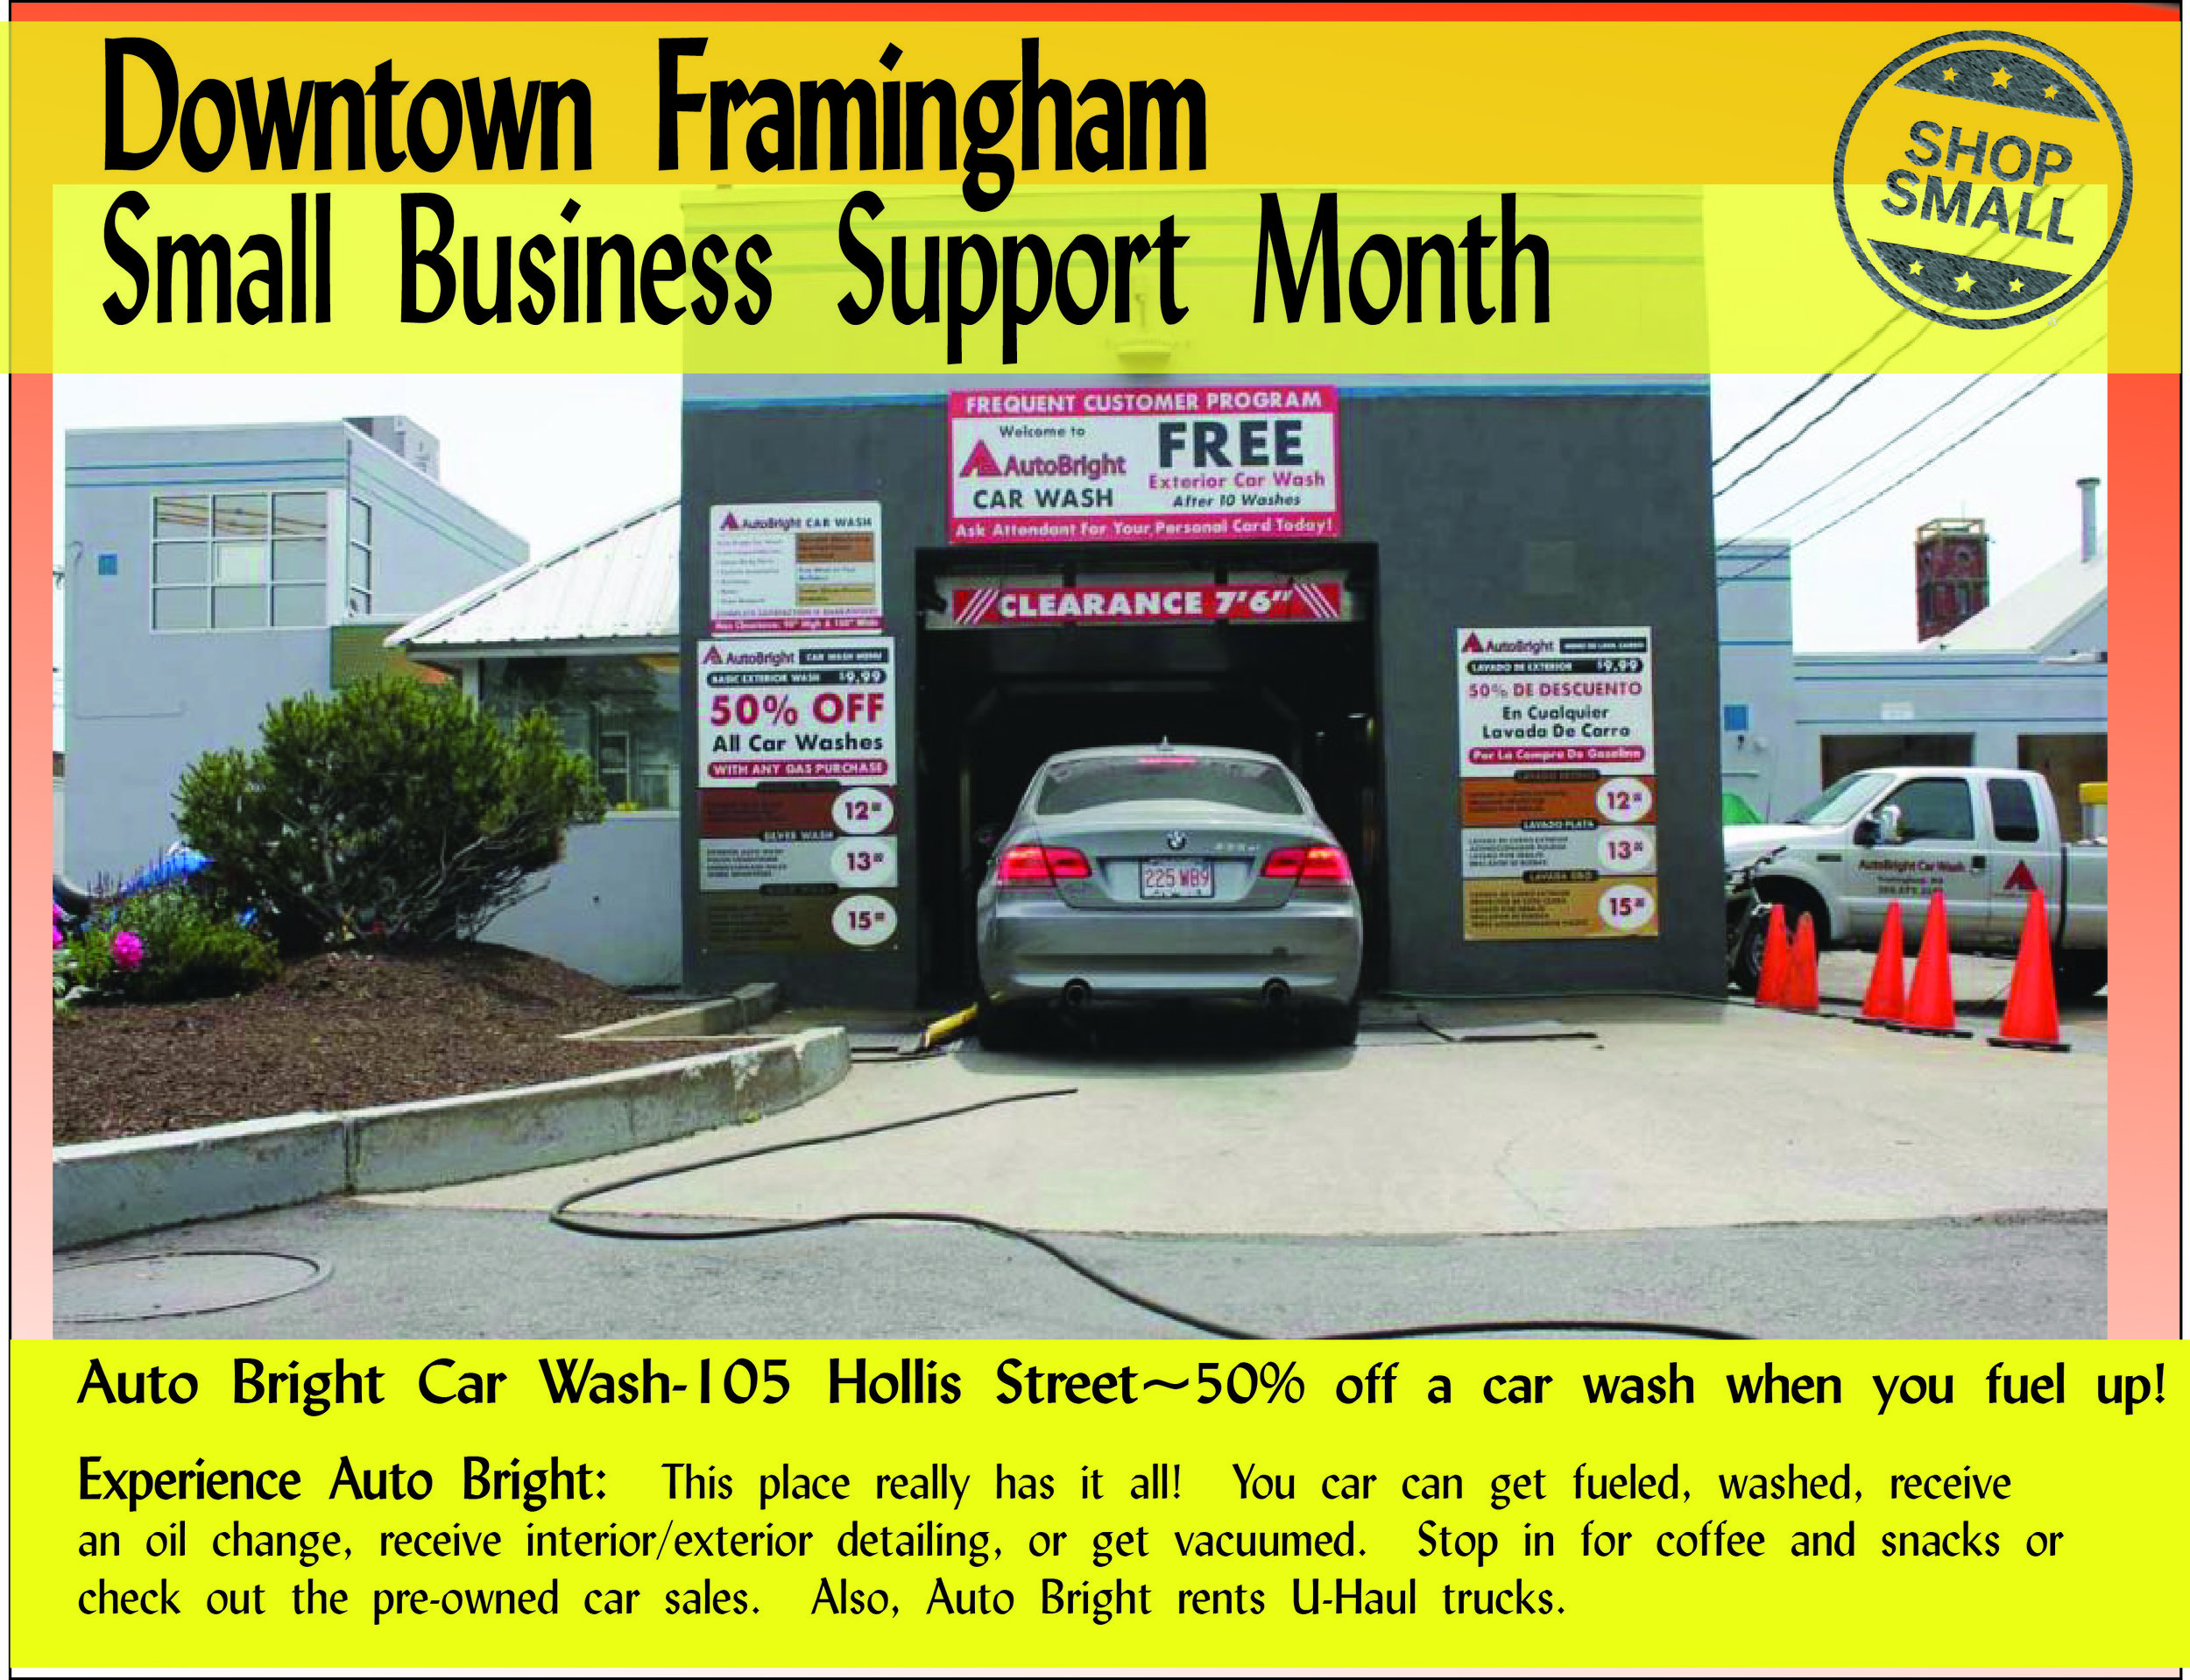 """It's Day 17 of Small Business Support Month! Reason #17:  """"STRENGTHEN YOUR LOCAL ECONOMY! Each dollar you spend at independent businesses returns 3 times more money to your local economy than one spent at a chain (almost 50 times more than buying from an online mega-retailer) — a benefit we all can bank on.""""  Today's promo is  Auto Bright Car Wash , a family-run business that has made downtown its home for decades!  Content Source:  https://www.amiba.net/resources/localhero/"""